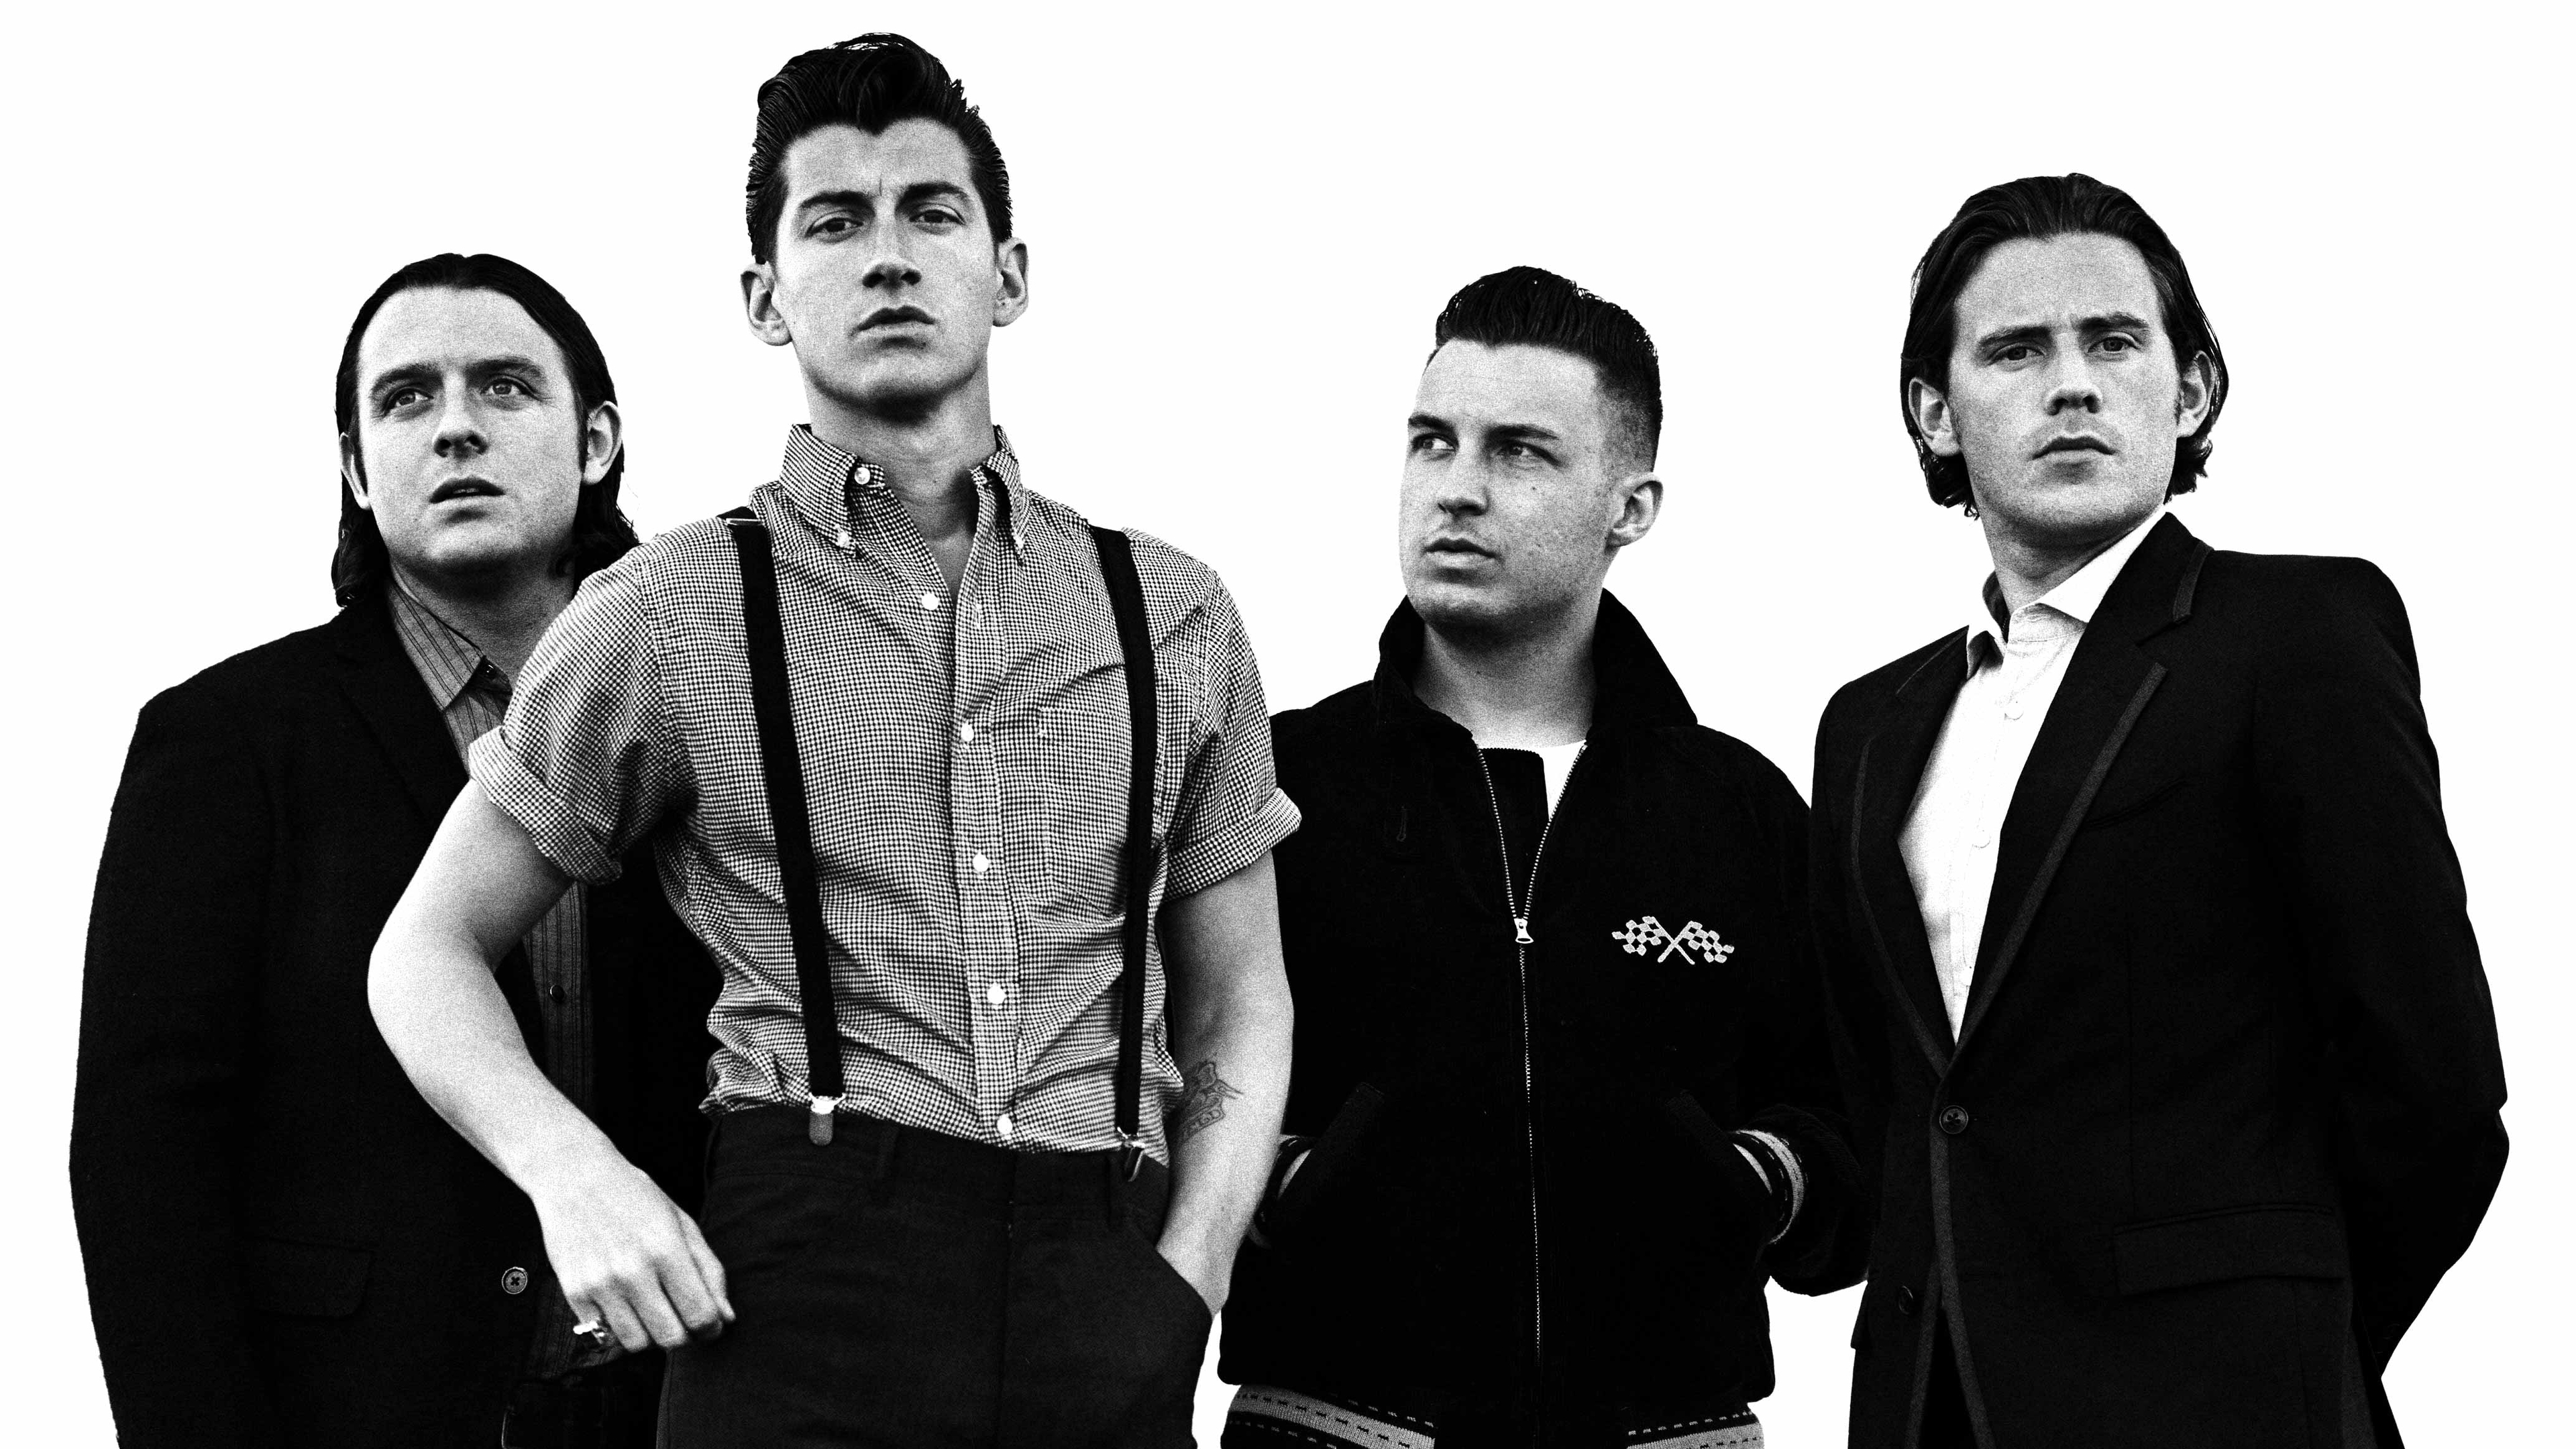 Sheffield United Iphone Wallpaper Arctic Monkeys 4k Ultra Hd Wallpaper Background Image